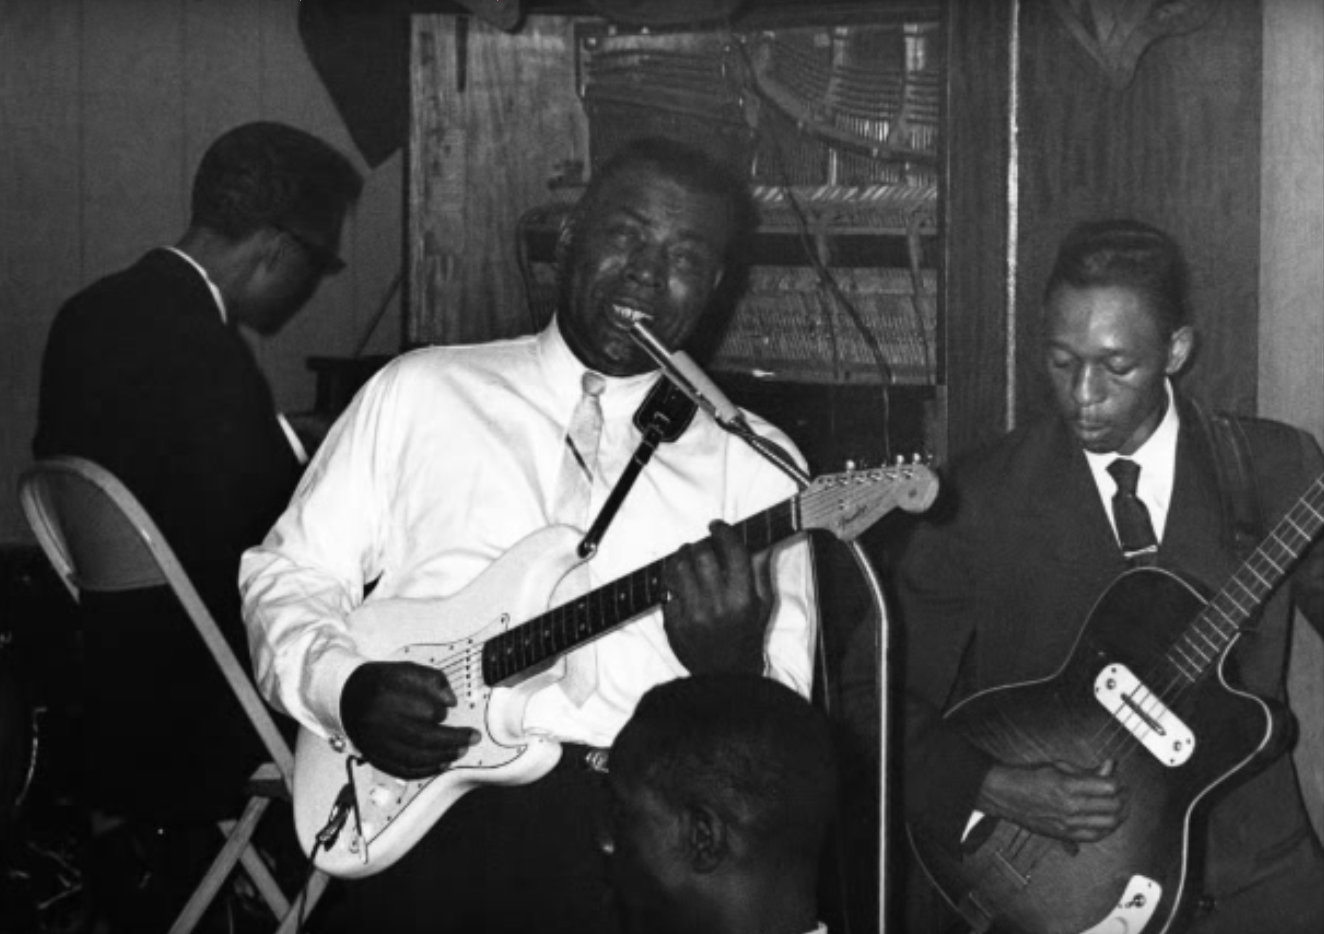 Howlin' Wolf -Creative Commons License: https://creativecommons.org/licenses/by/4.0/